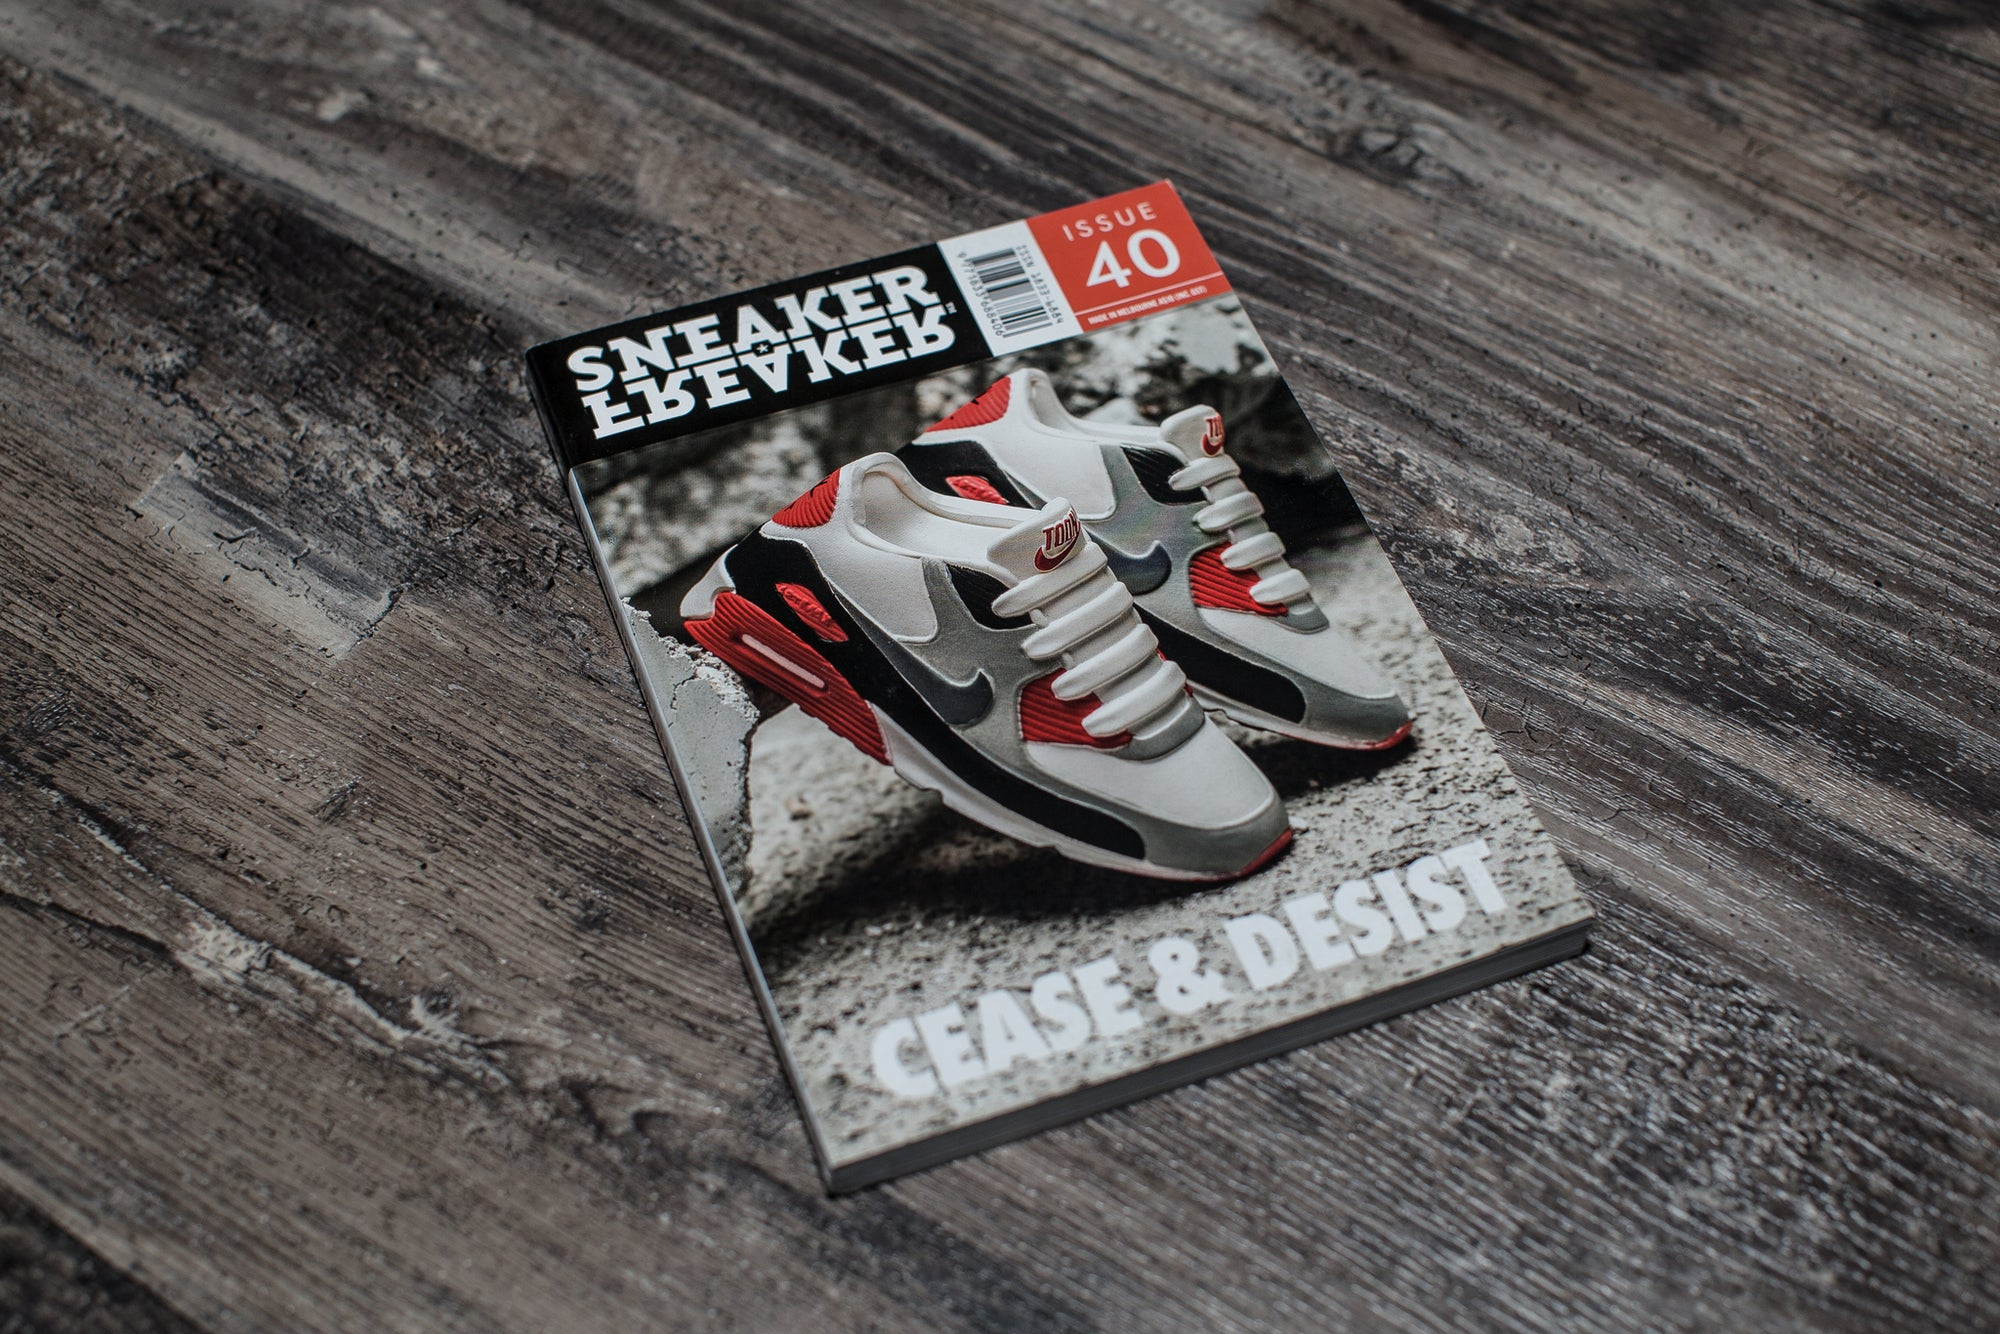 SNEAKER FREAKER: ISSUE 40 CEASE & DESIST